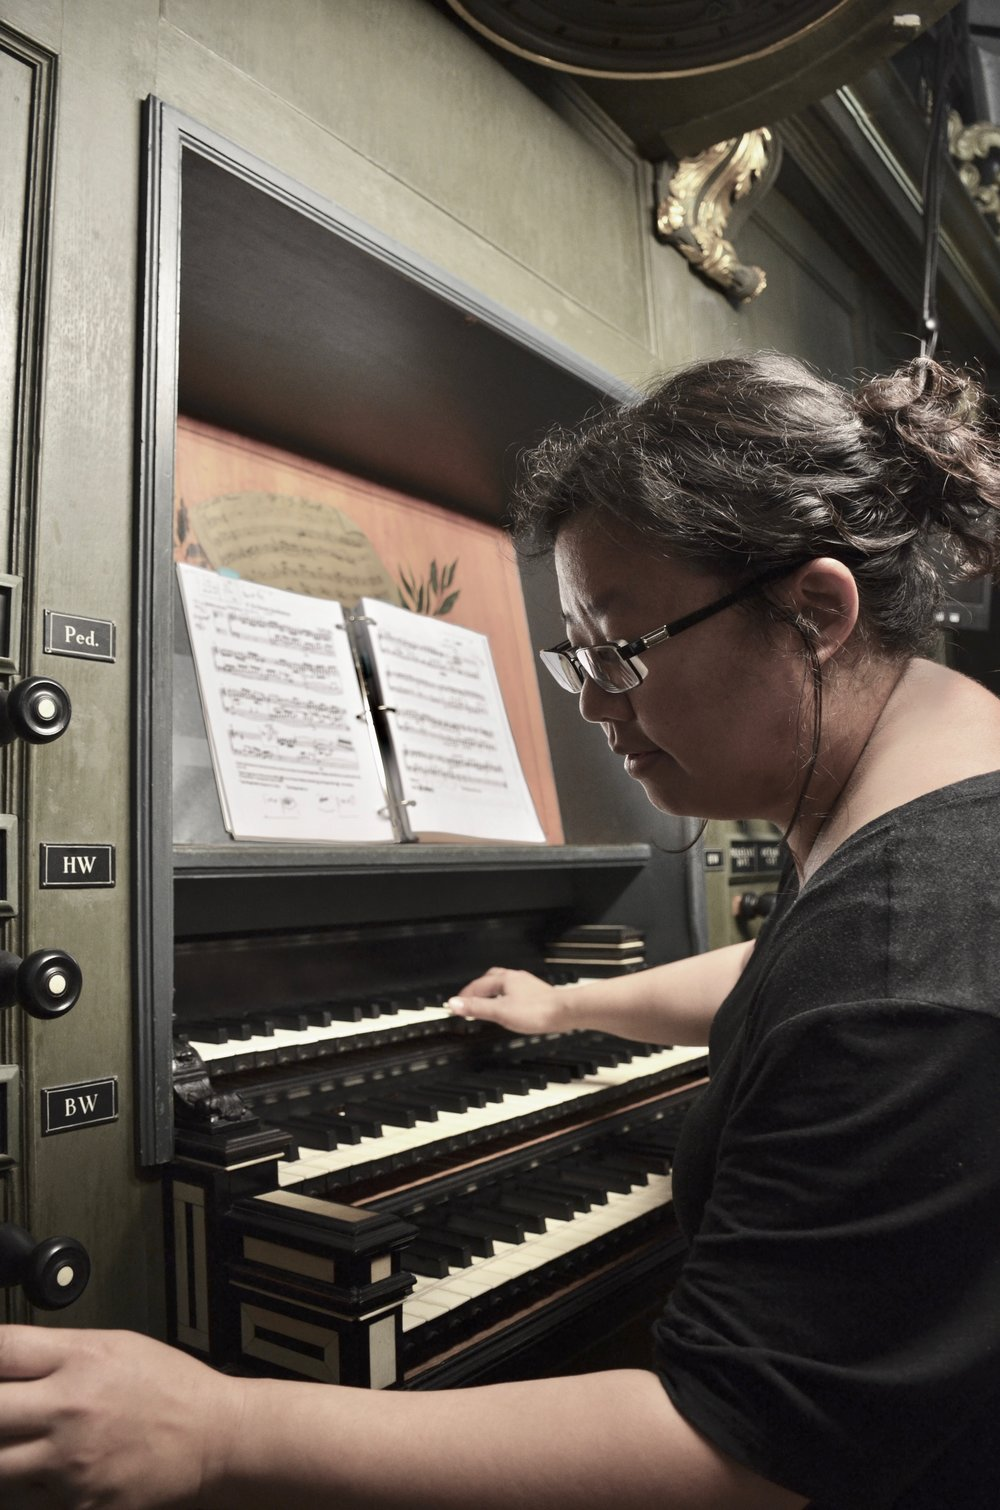 Jennifer Hsiao at the 1692 Arp Schnitger pipe organ, Martinikerk, Groningen.